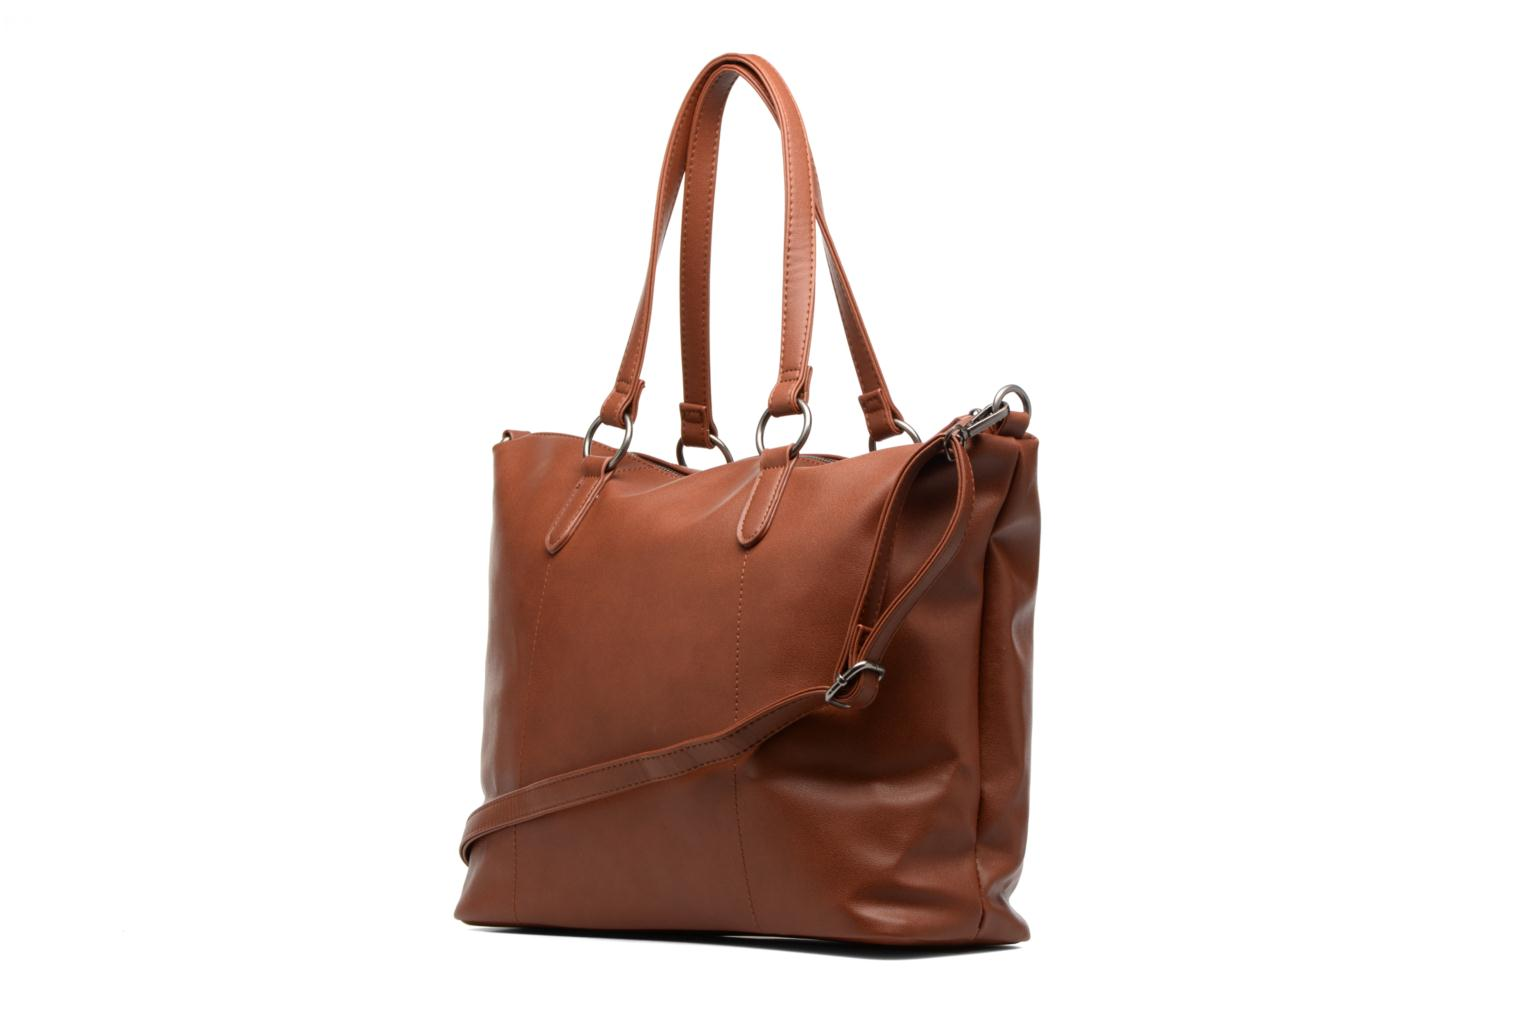 TAMALA Tote bag Brown